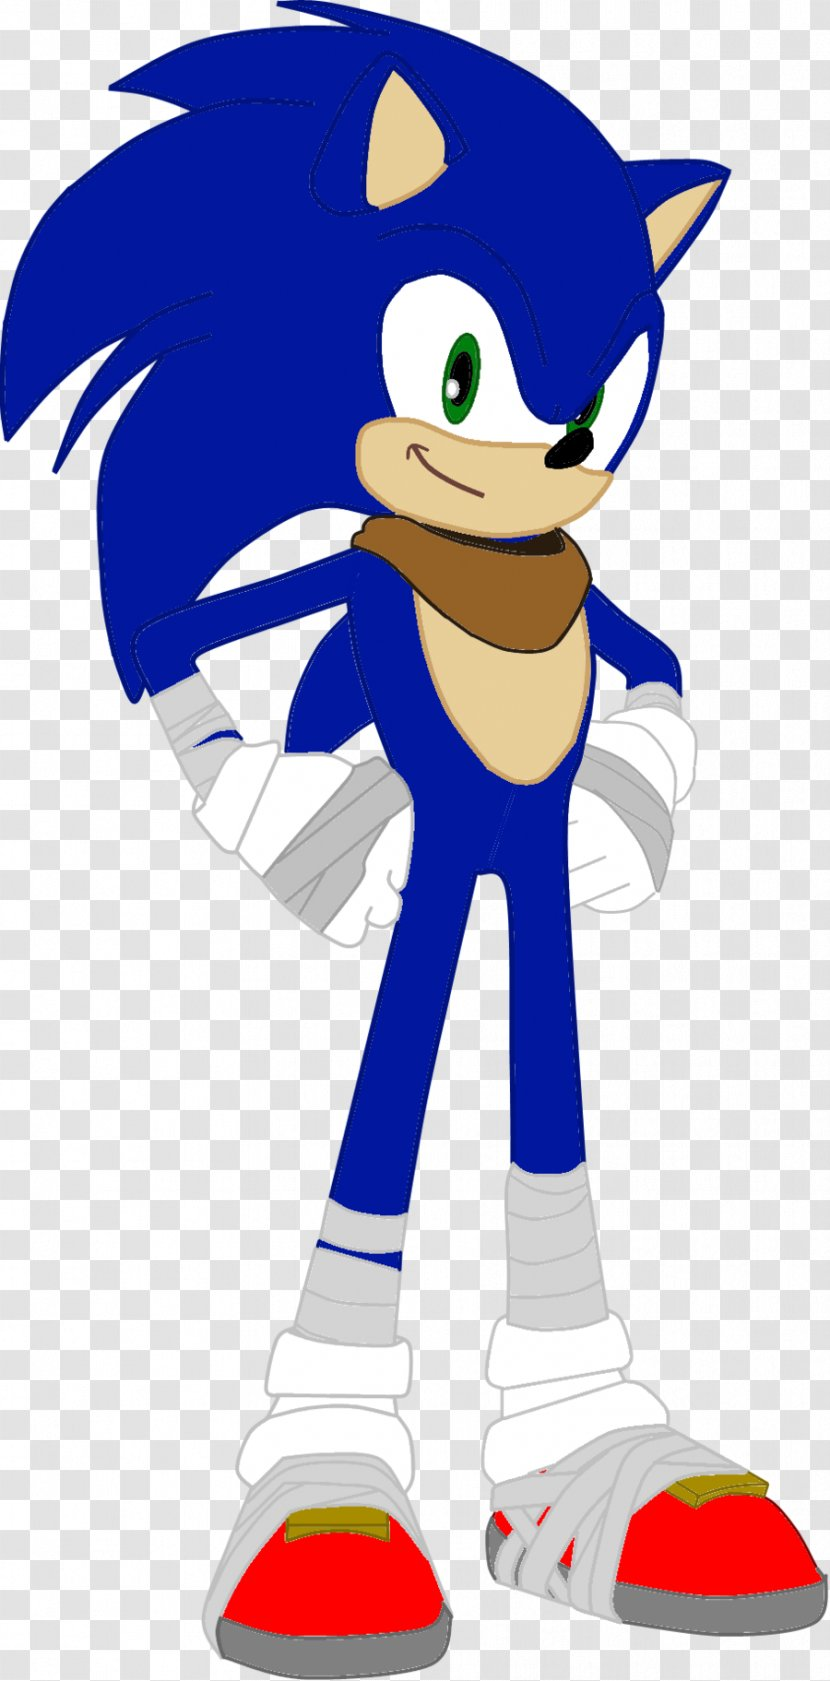 Sonic Boom The Hedgehog Vector Crocodile Amy Rose Knuckles Echidna Fictional Character Transparent Png